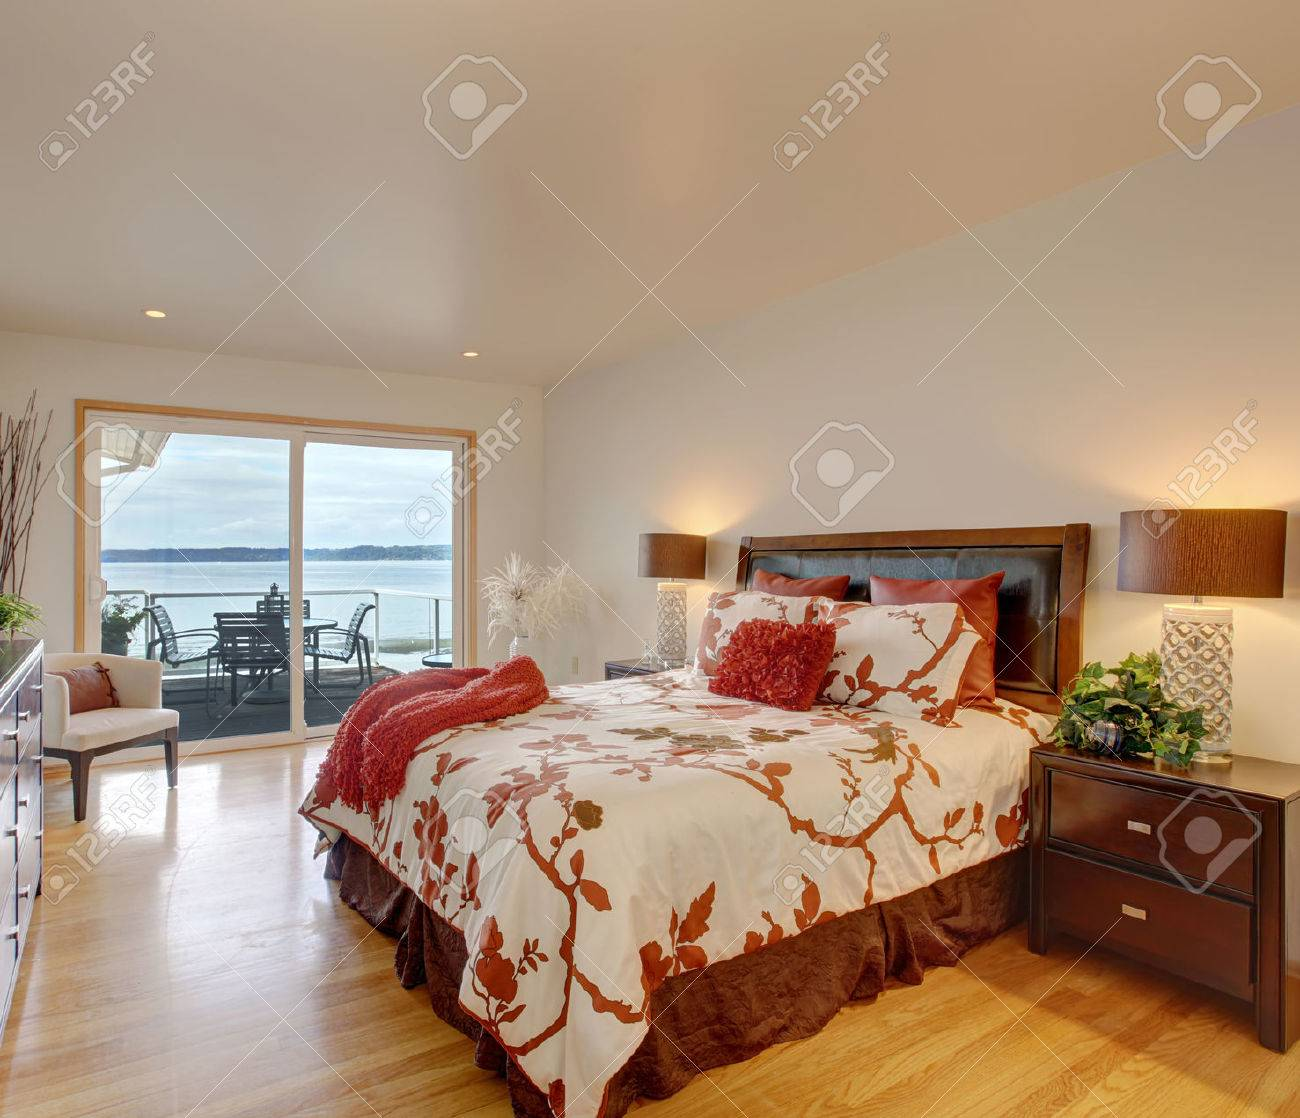 Romantic Master Bedroom Interior With Walkout Deck Bed With